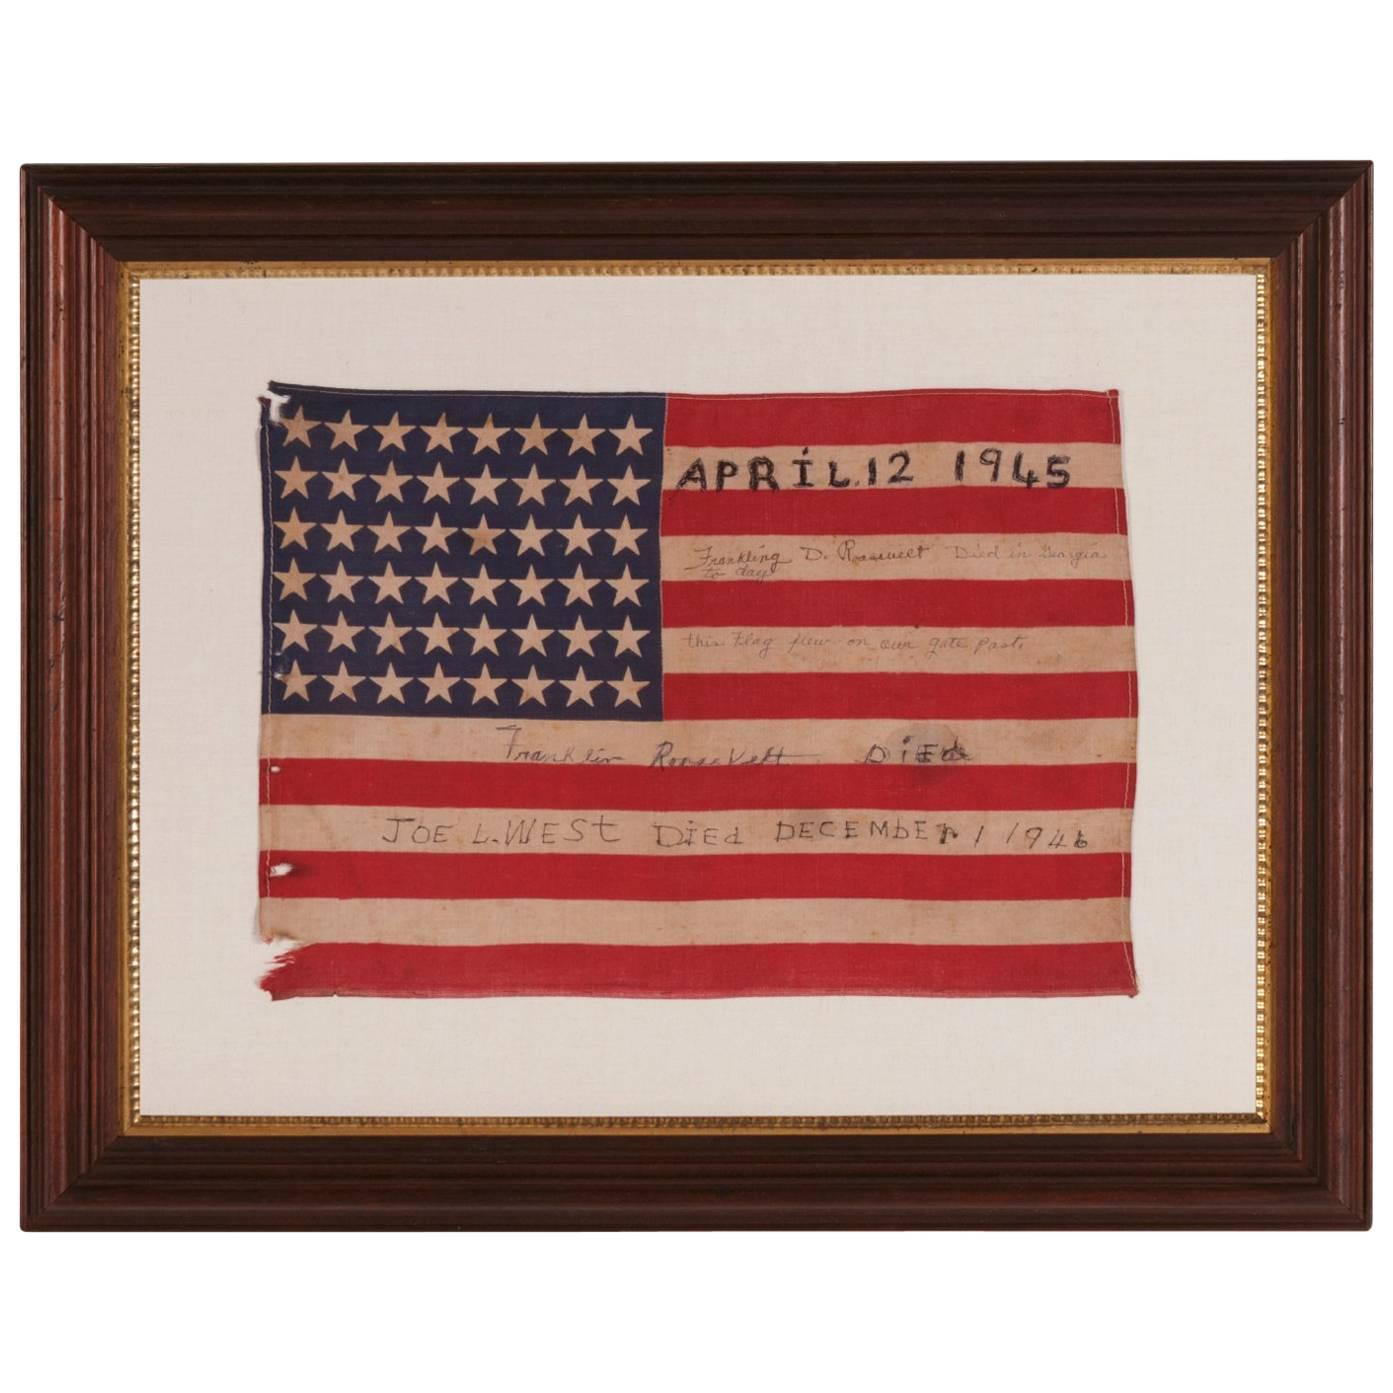 Antique American Flag w/ Hand-Written Inscriptions Mourning the Death of FDR